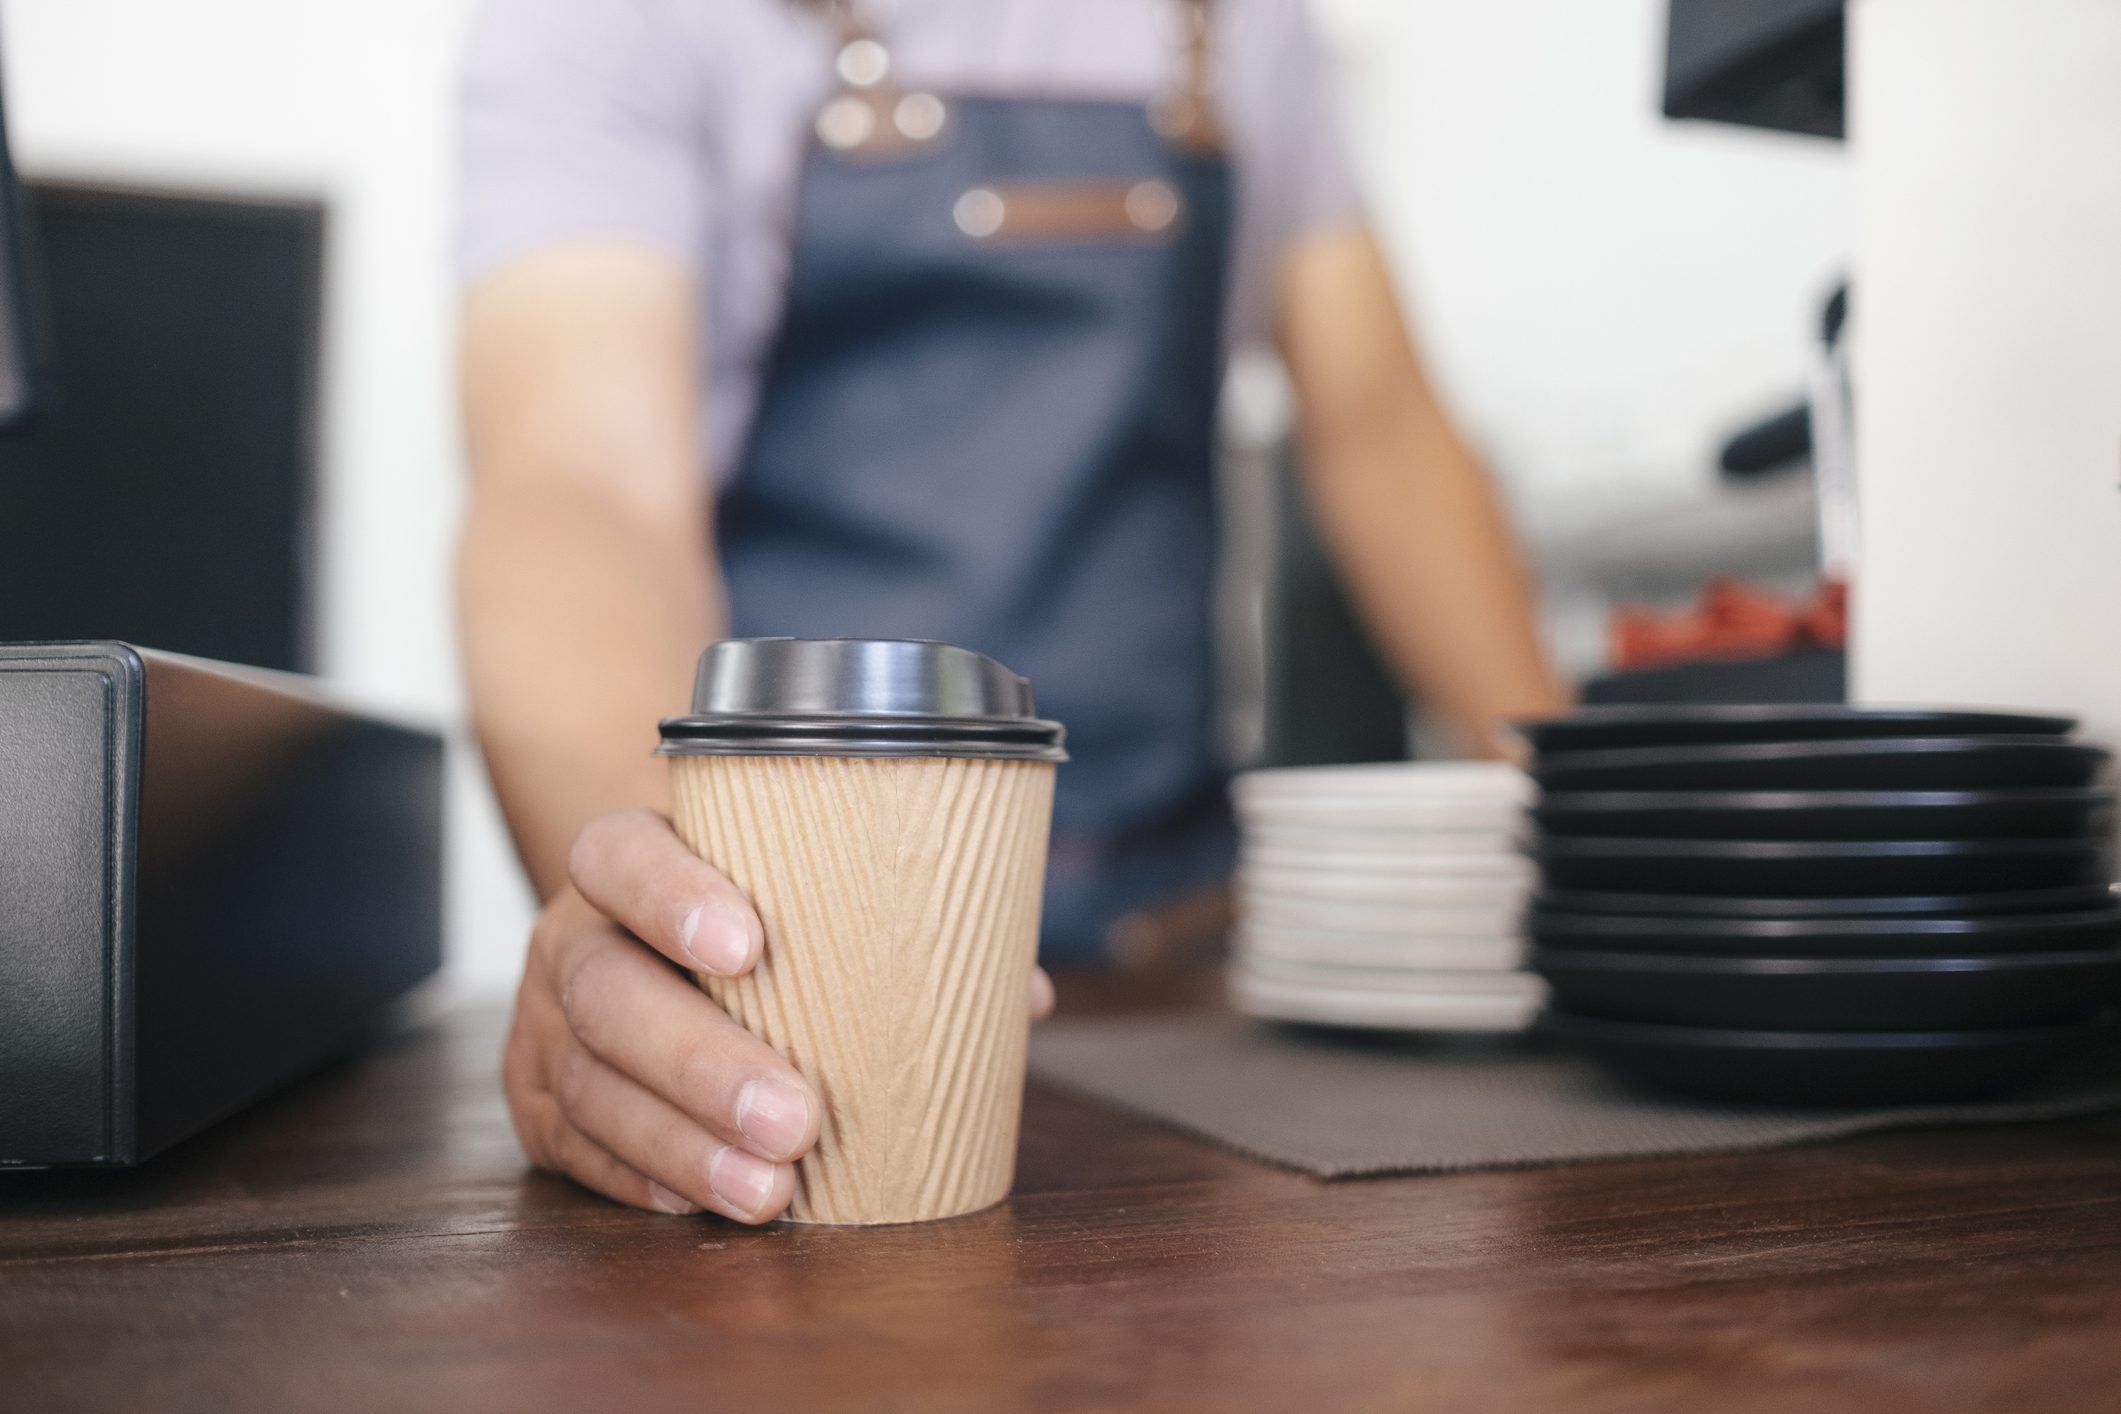 Why espresso could negate coffee's heart-healthy benefits